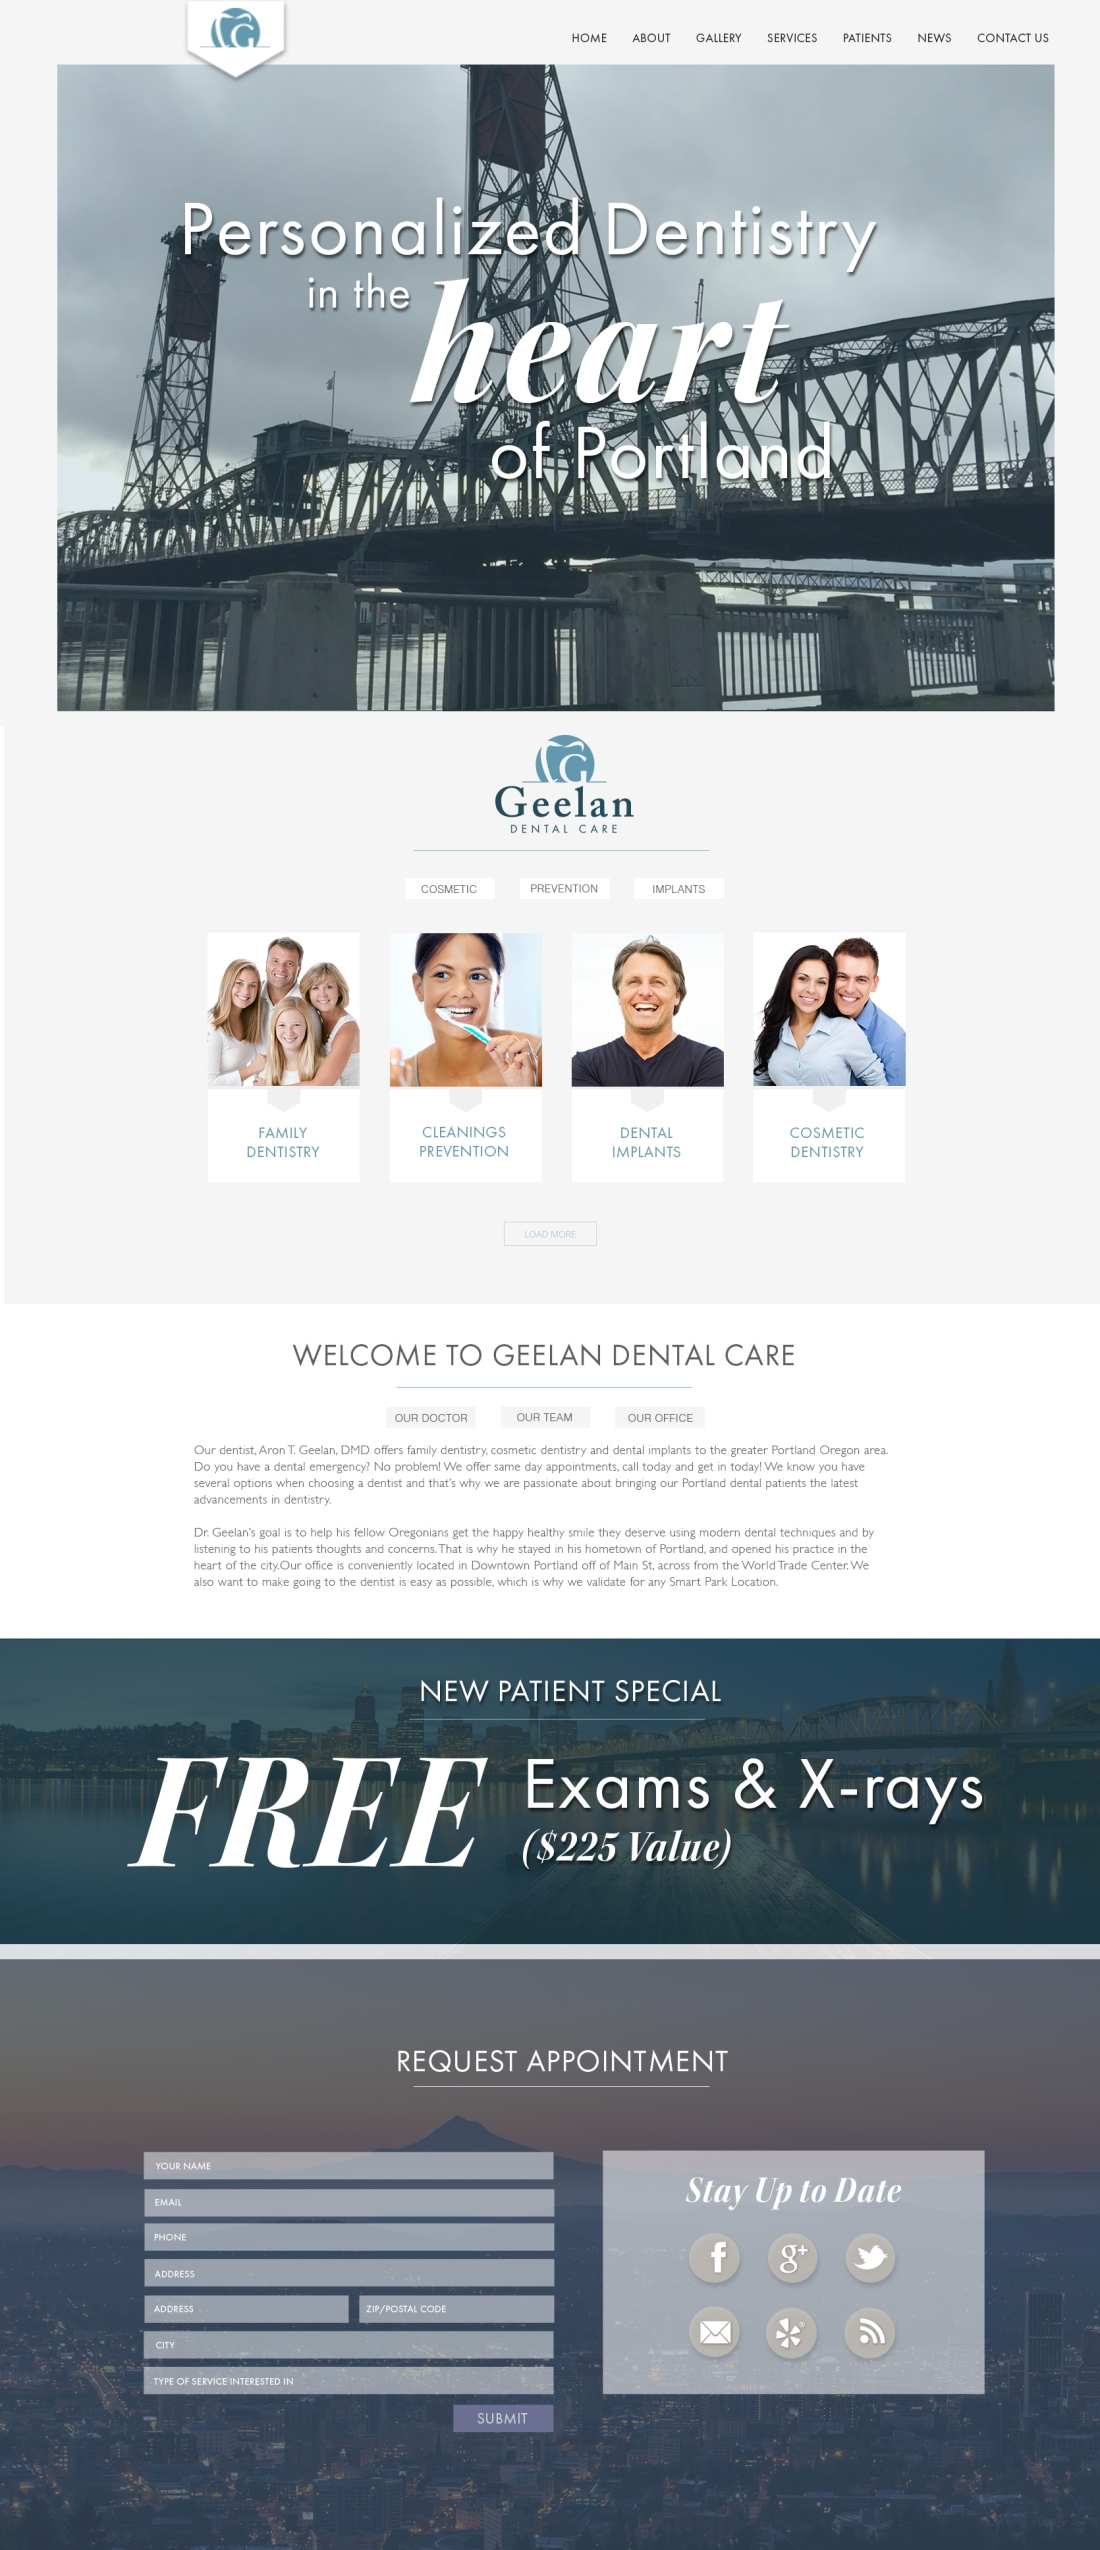 geelan_website_mockup_v3_updated